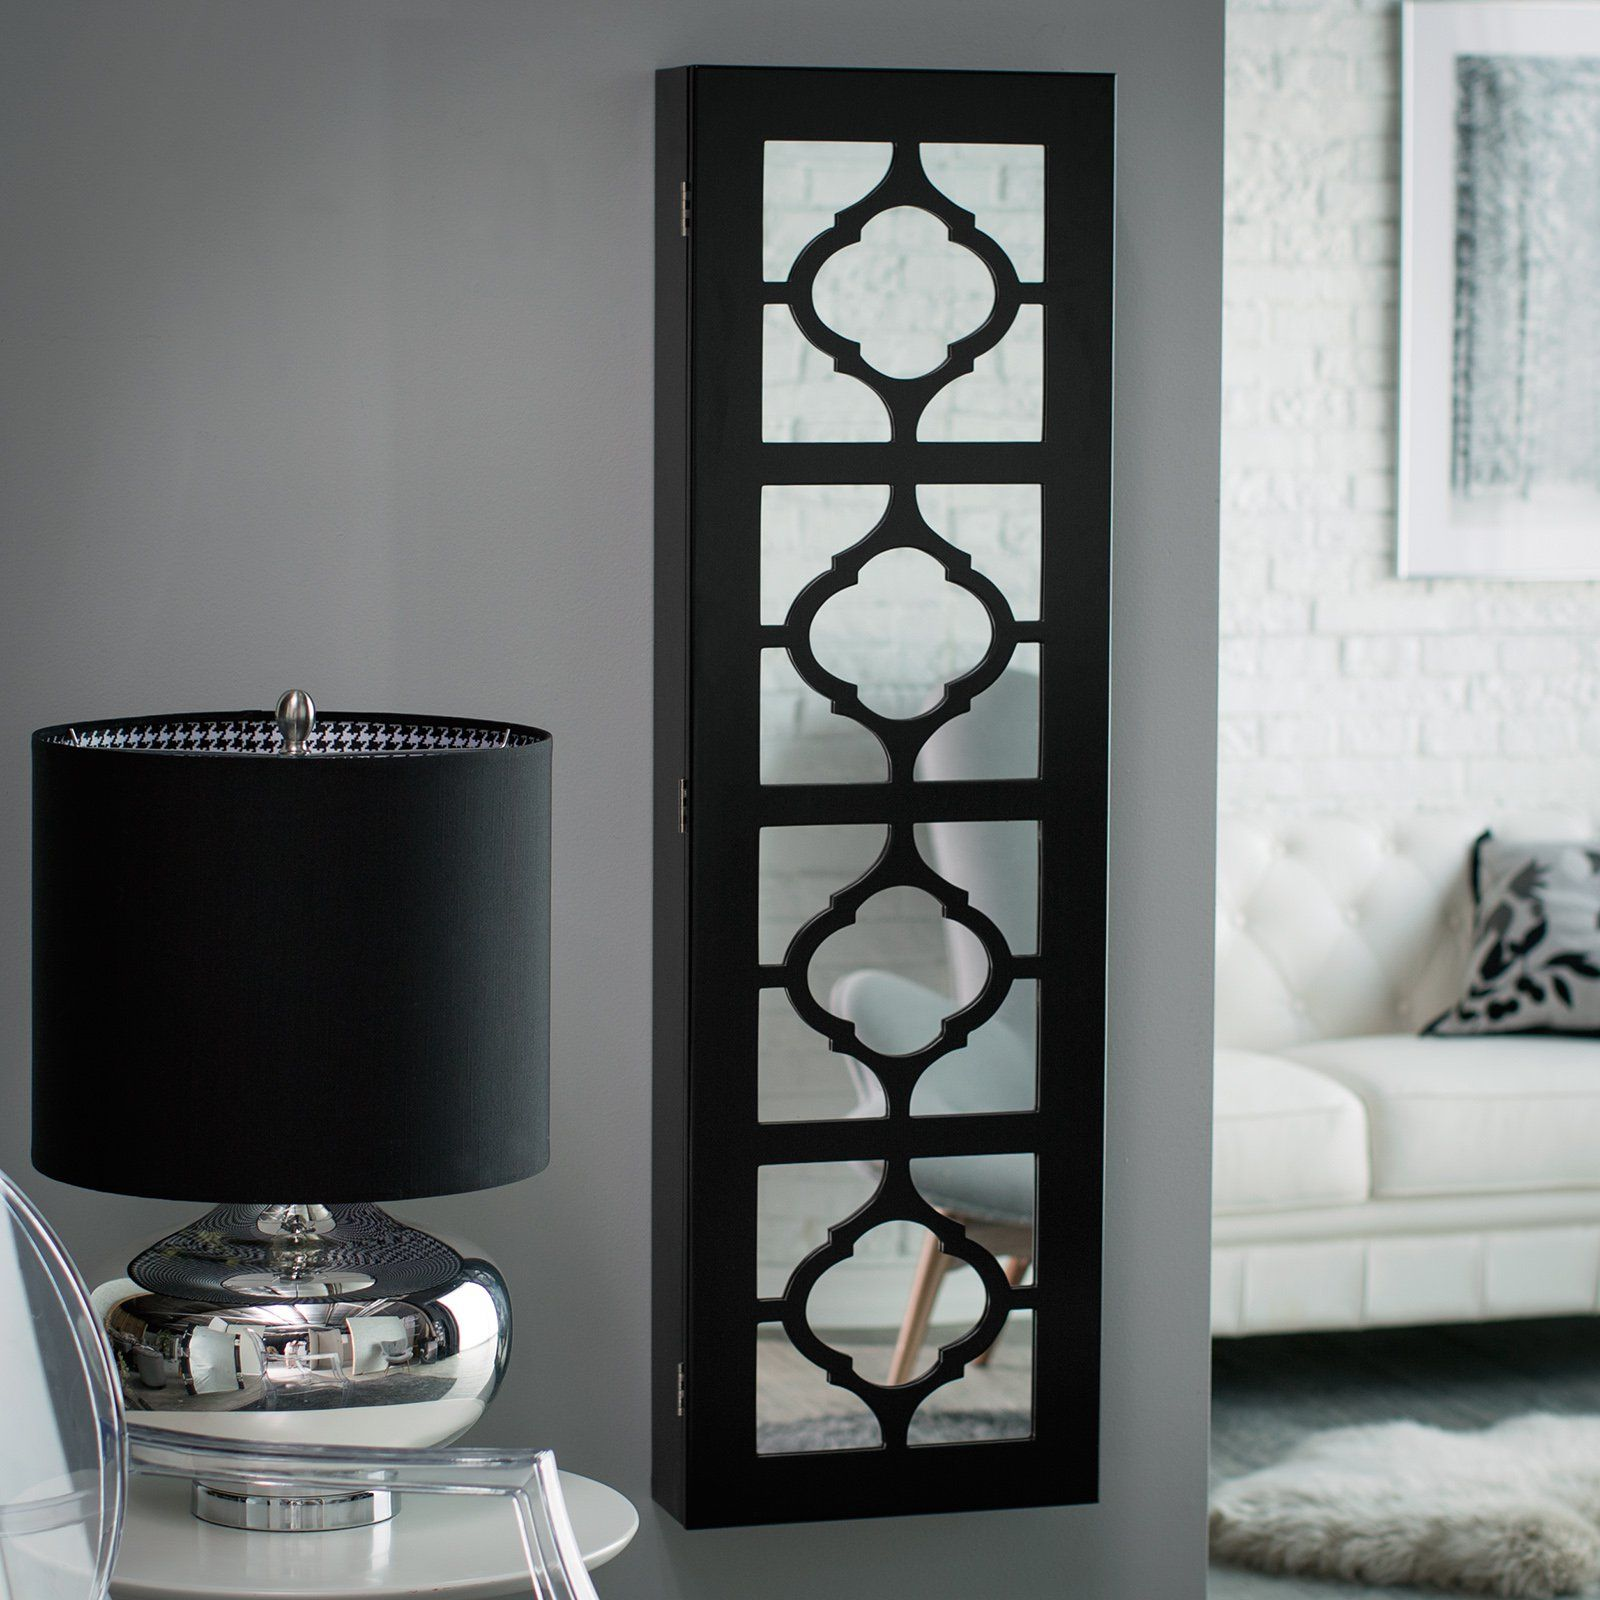 Have to have it Belham Living Lighted Locking Quatrefoil Wall Mount